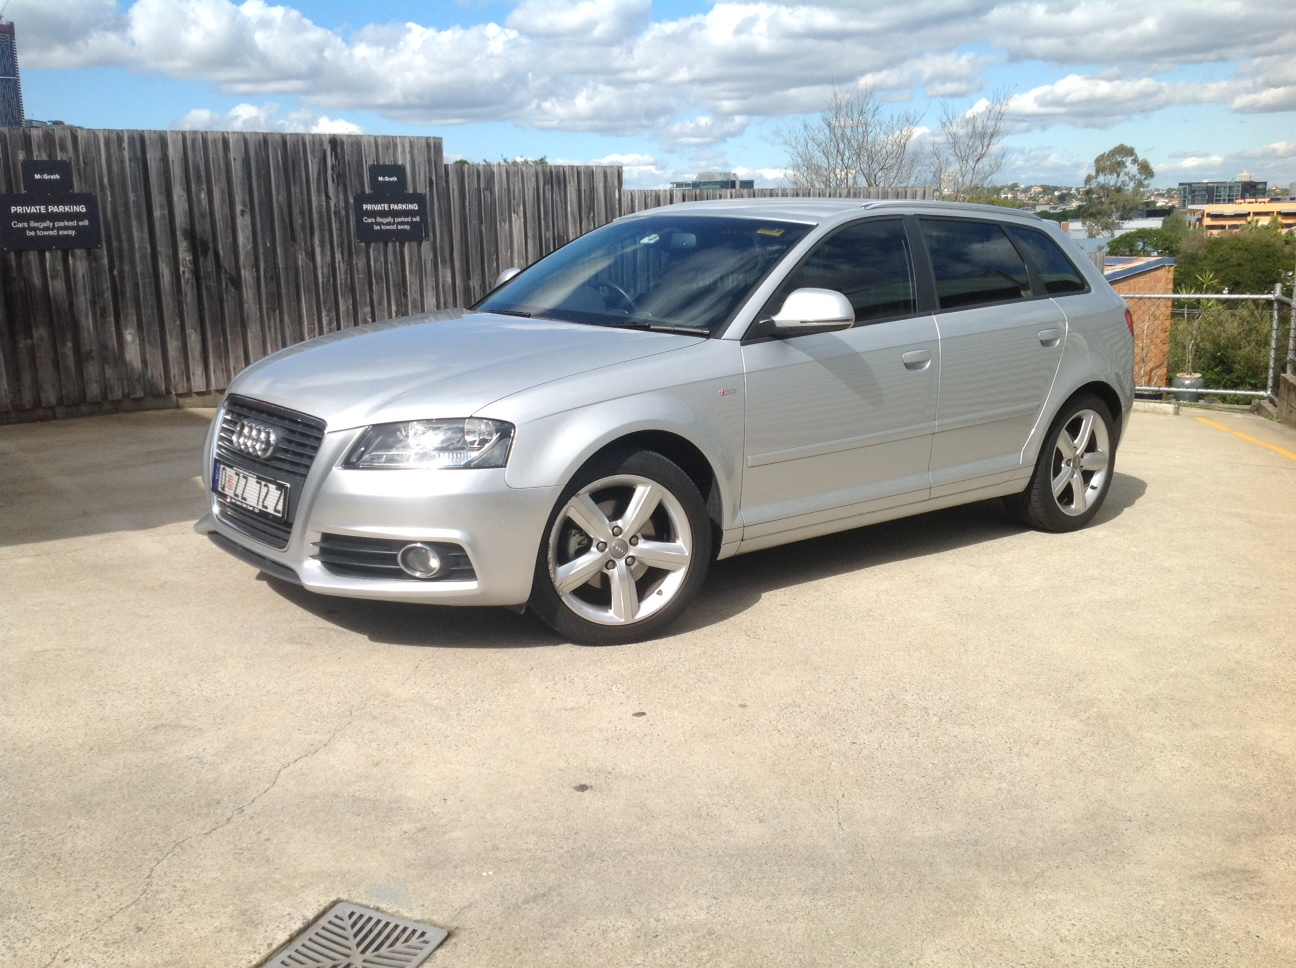 2010 audi a3 sportback 1 8 tfsi ambition 8p car sales qld brisbane 2533545. Black Bedroom Furniture Sets. Home Design Ideas